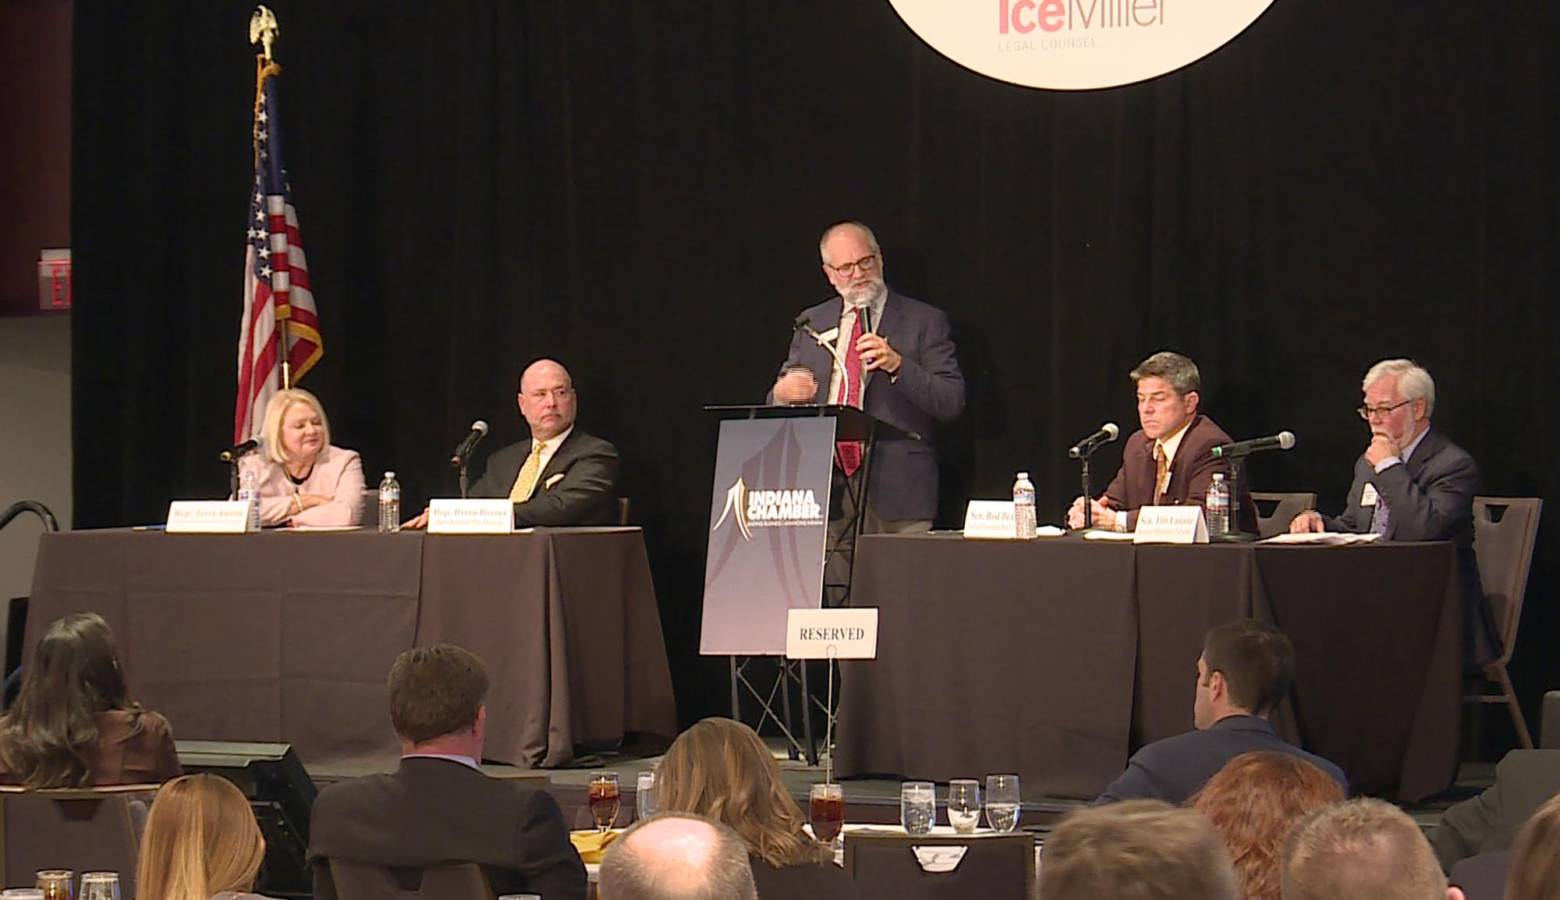 Legislative leaders preview the 2020 session at a panel hosted by the Indiana Chamber of Commerce. (Lauren Chapman/IPB News)